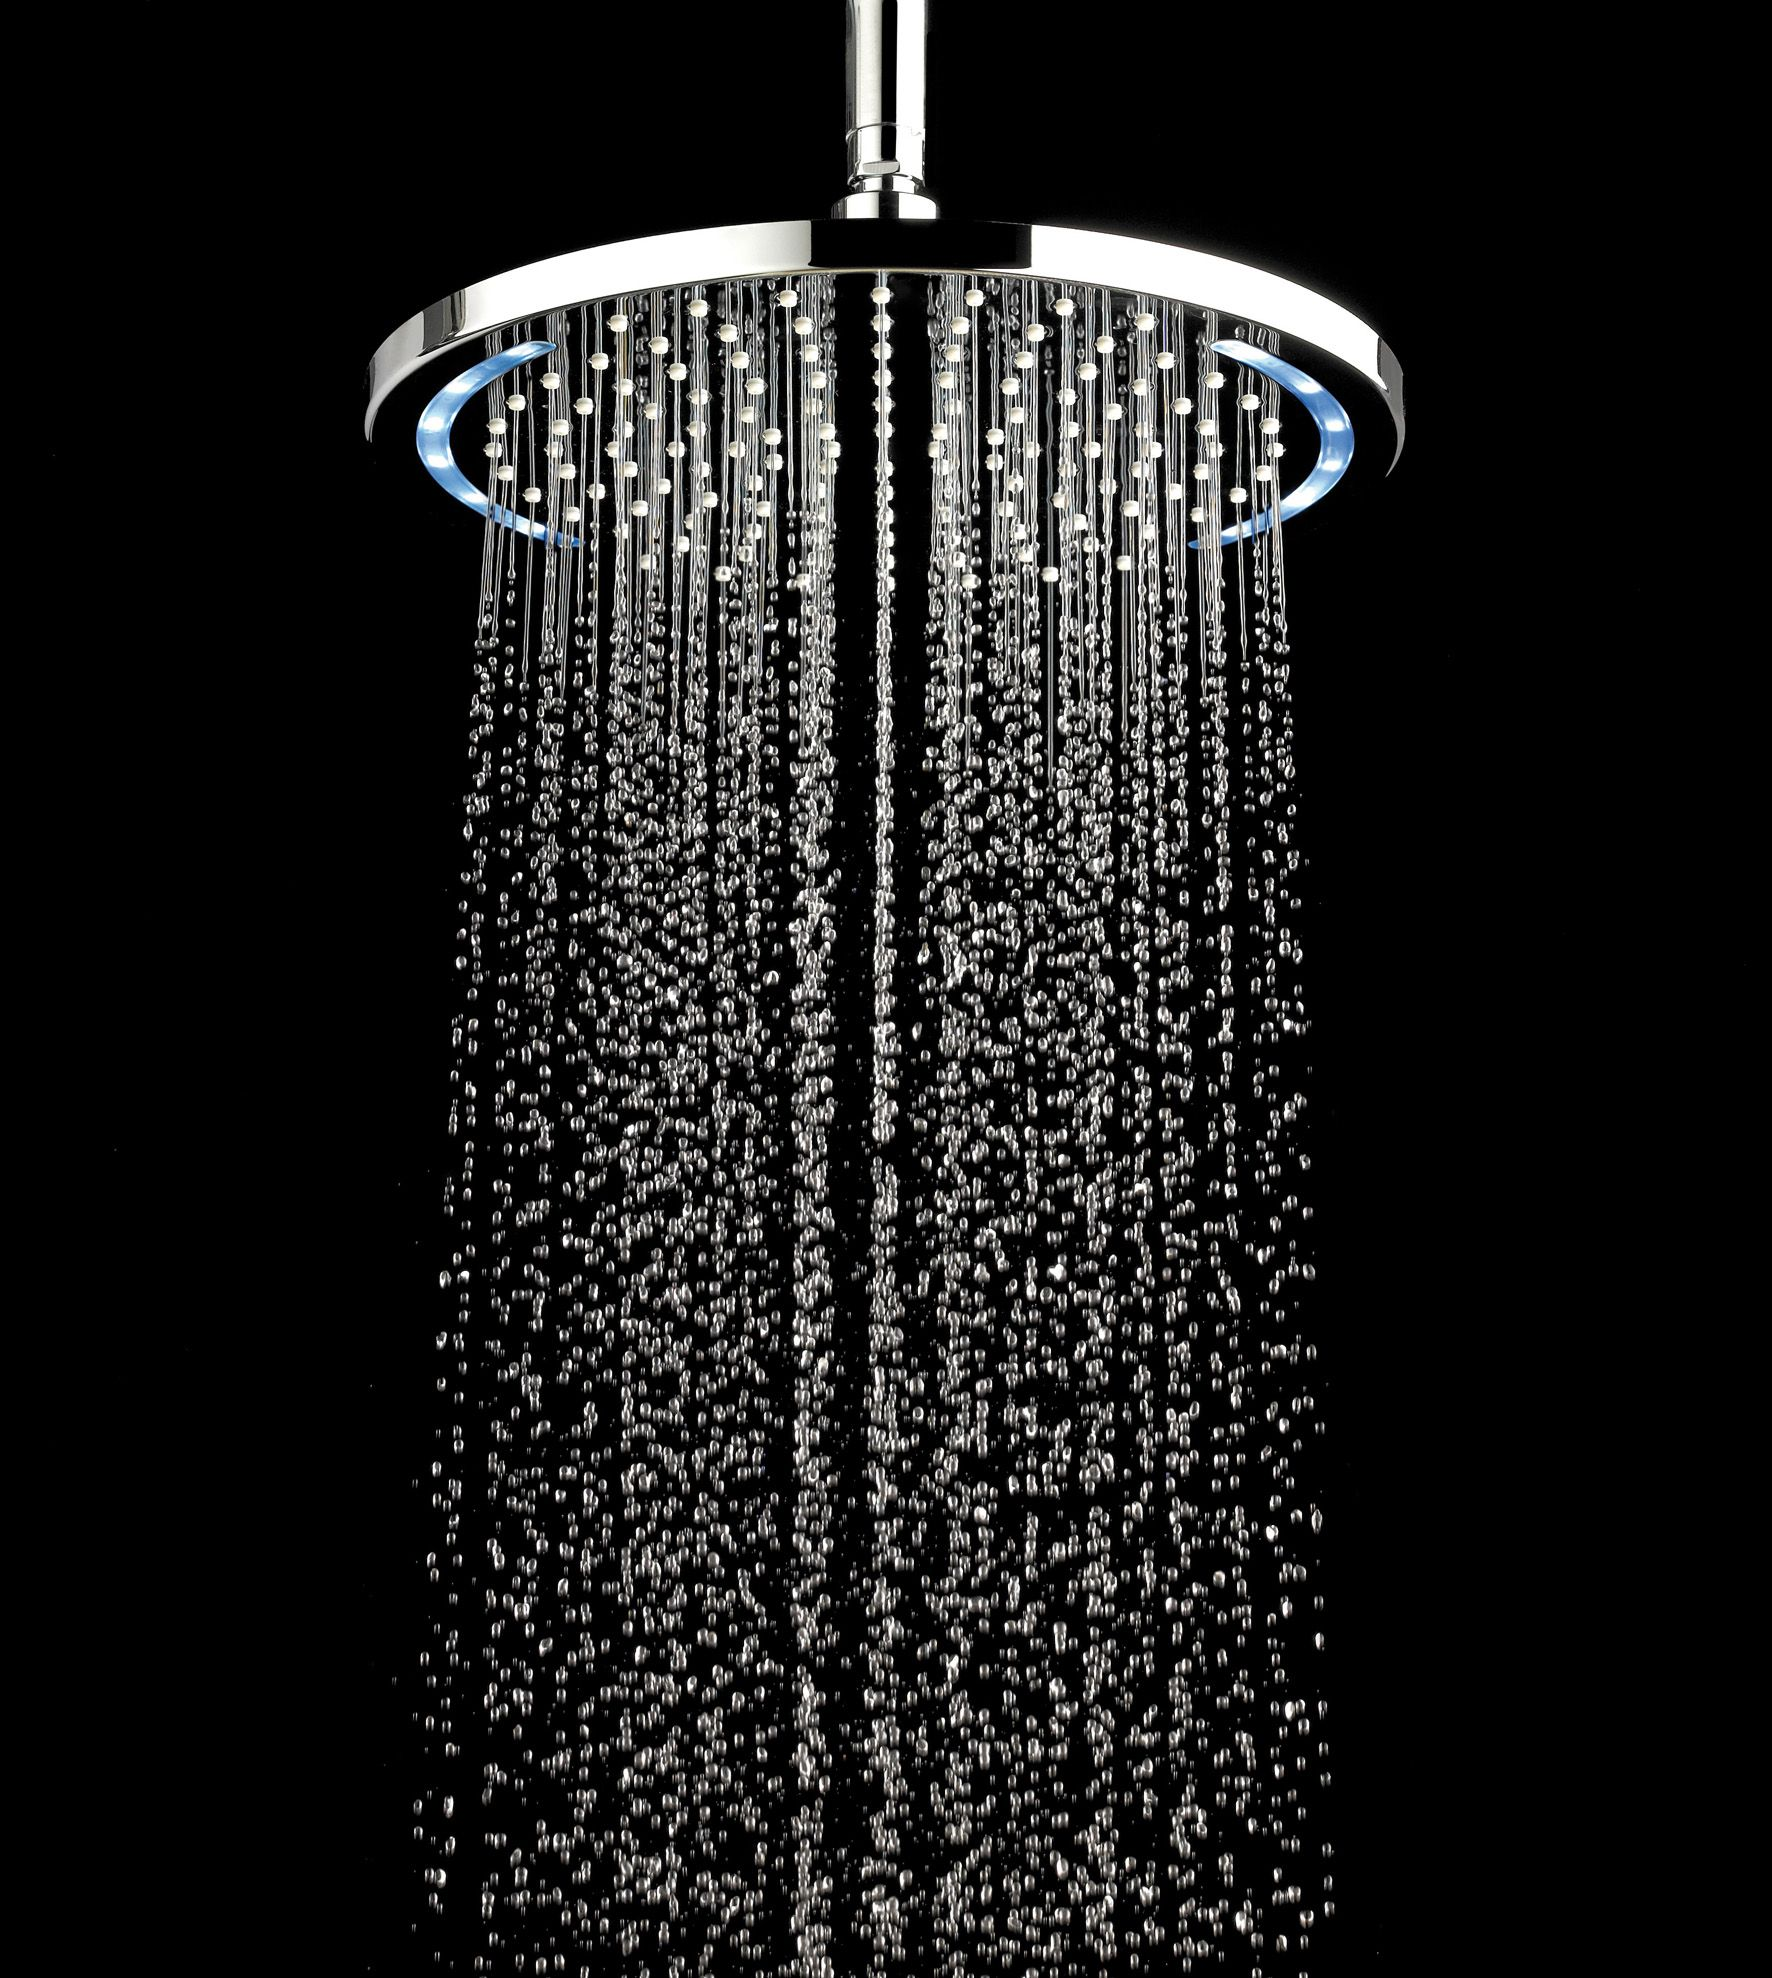 new led fixed shower heads come in square or round options led